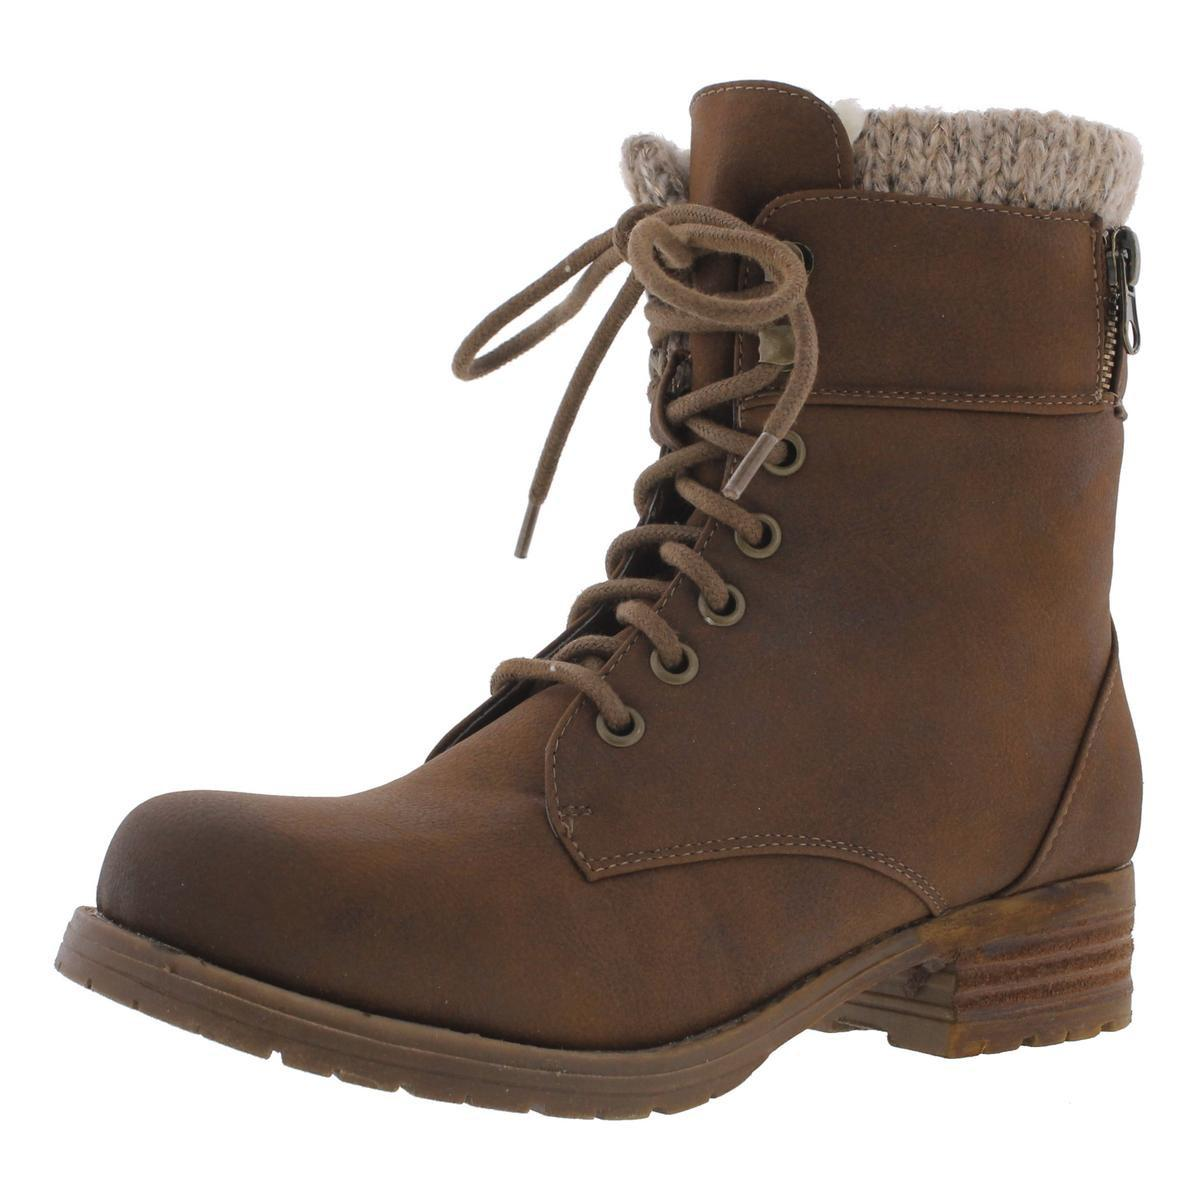 9bb086299e4 Lyst - Steve Madden Milina Faux Fur Lined Combat Boots in Brown